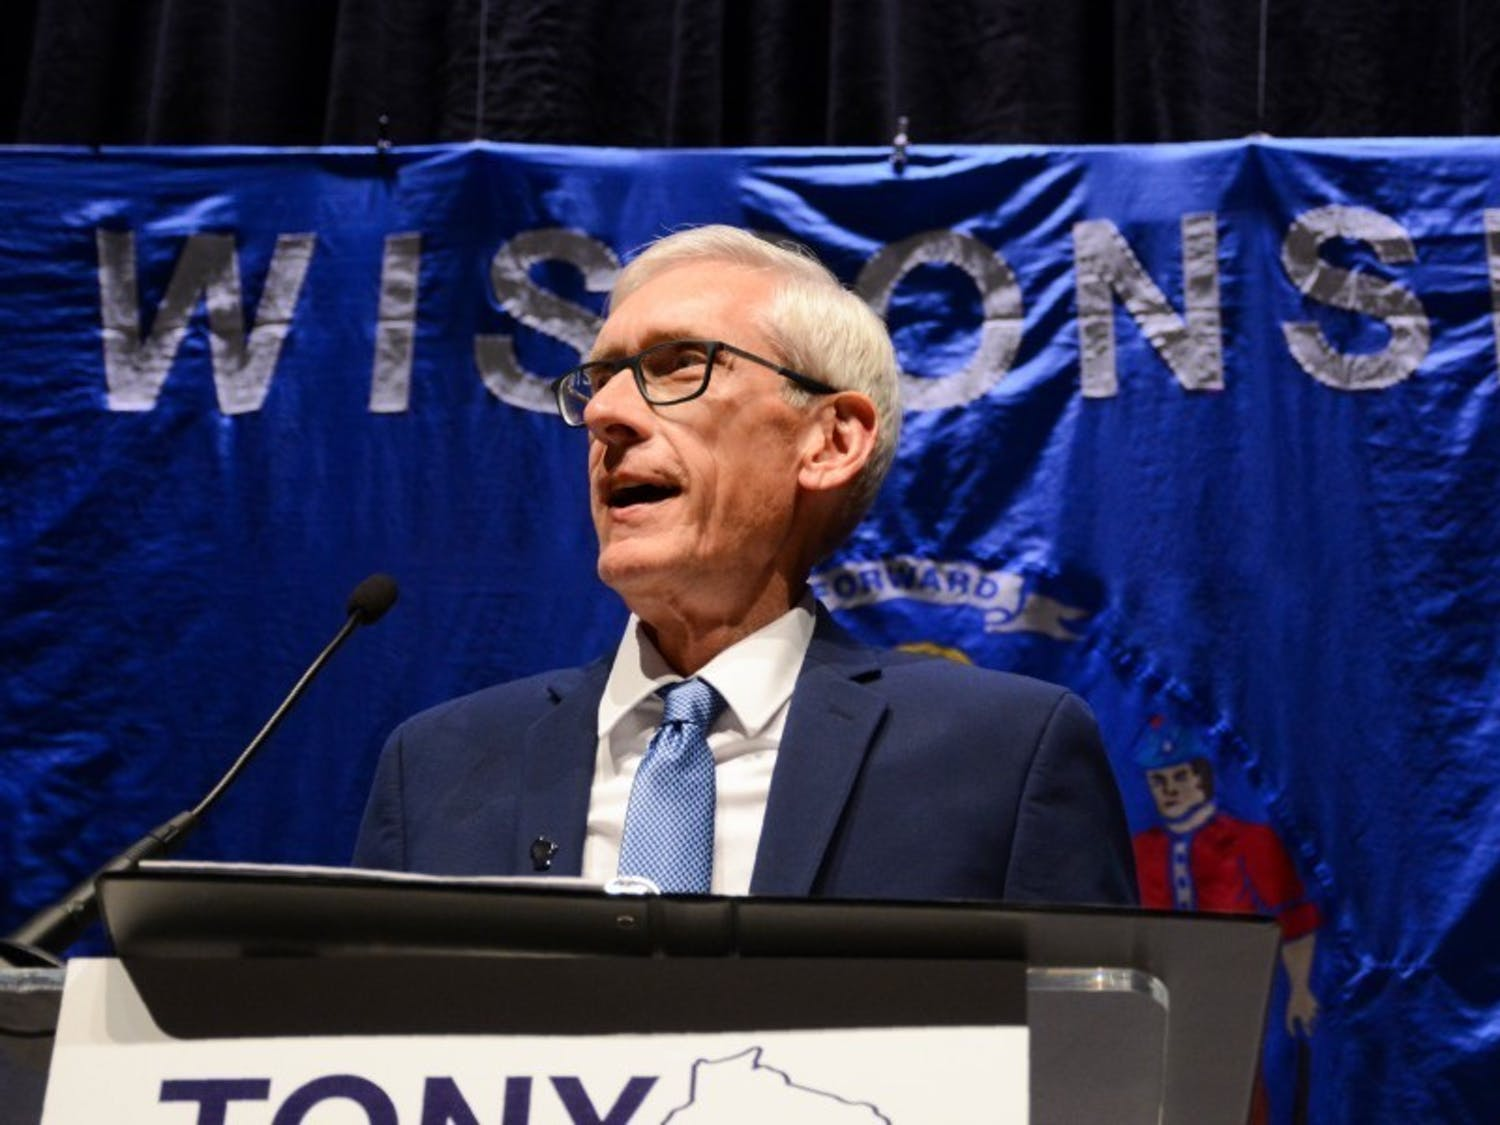 Wisconsin Governor Tony Evers gives a speech